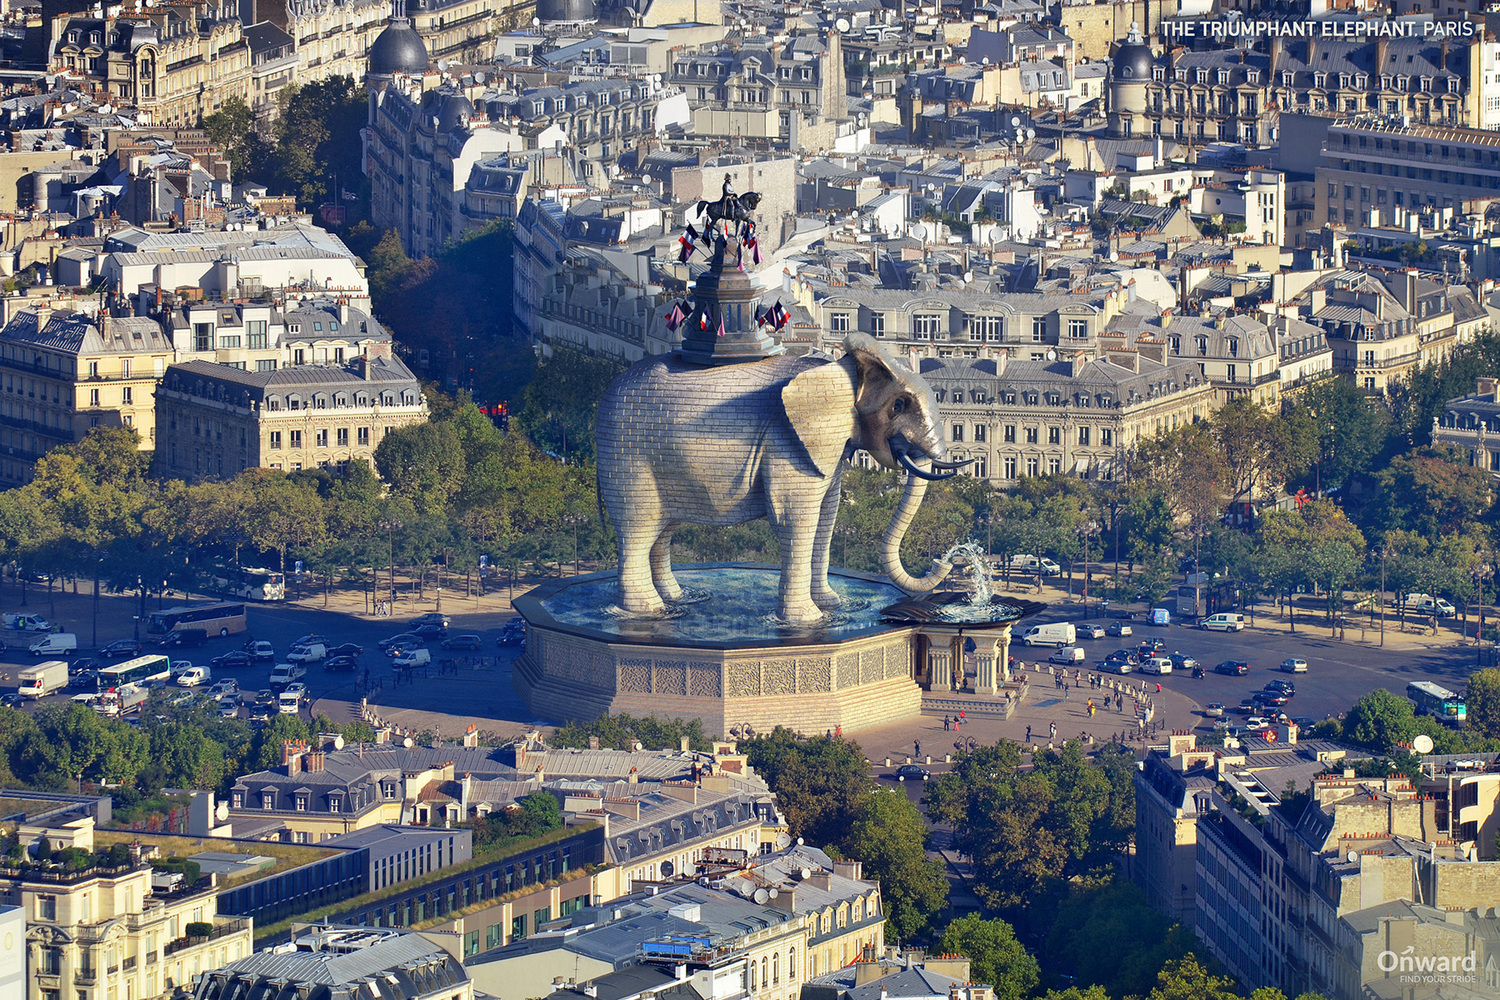 The Triumphant Elephant - Paris, França